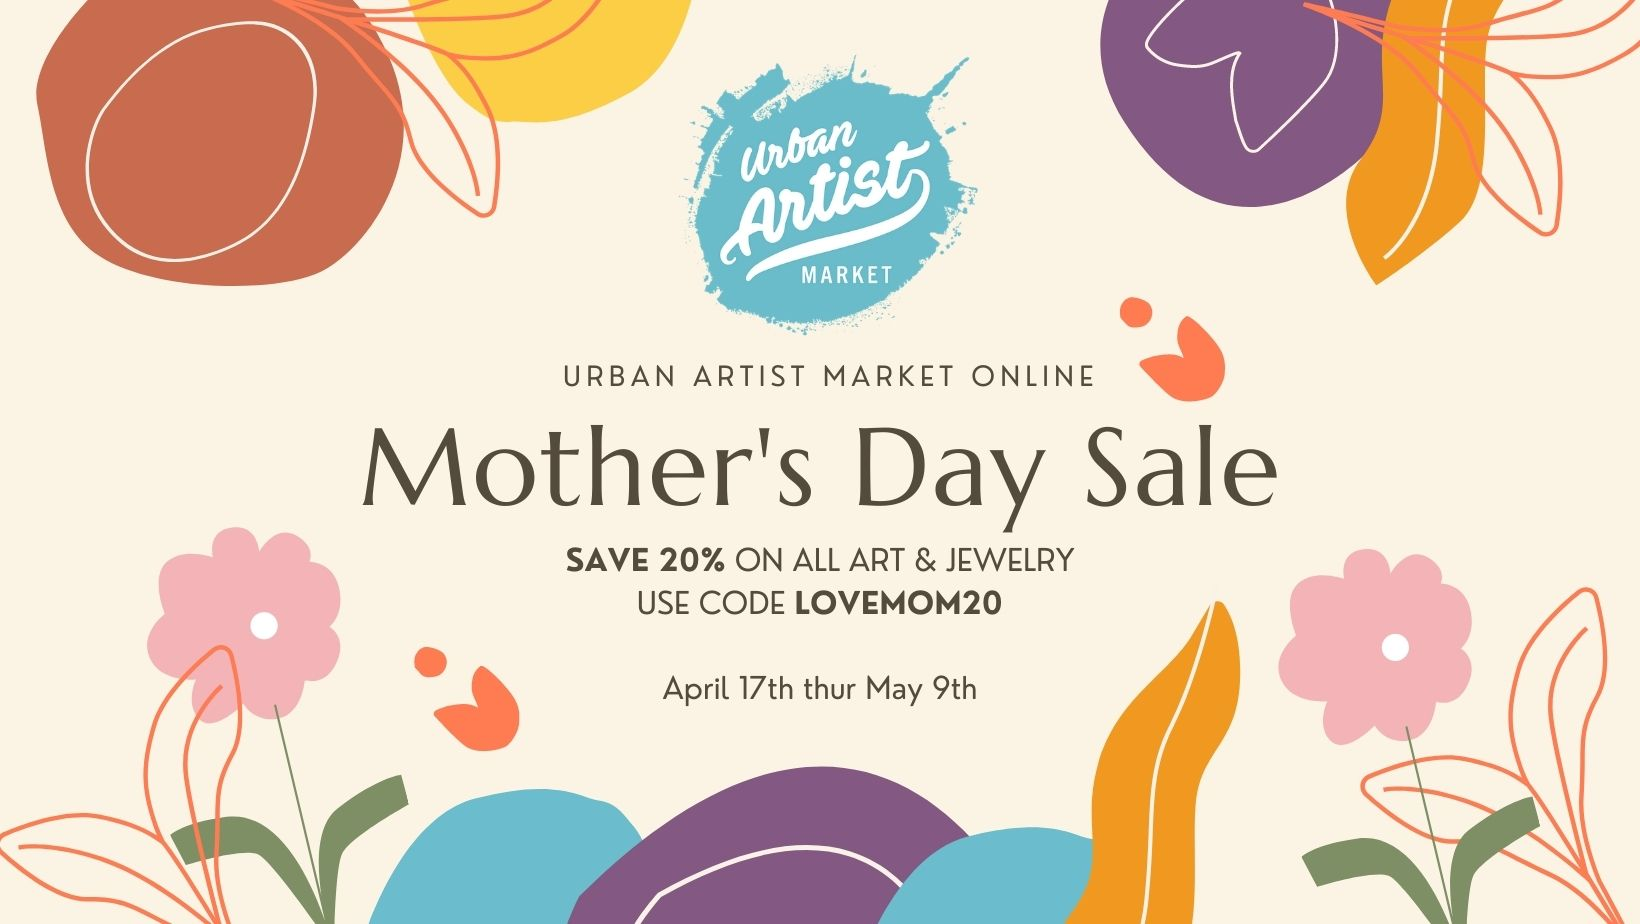 Announcing 20% OFF Mother's Day Sale